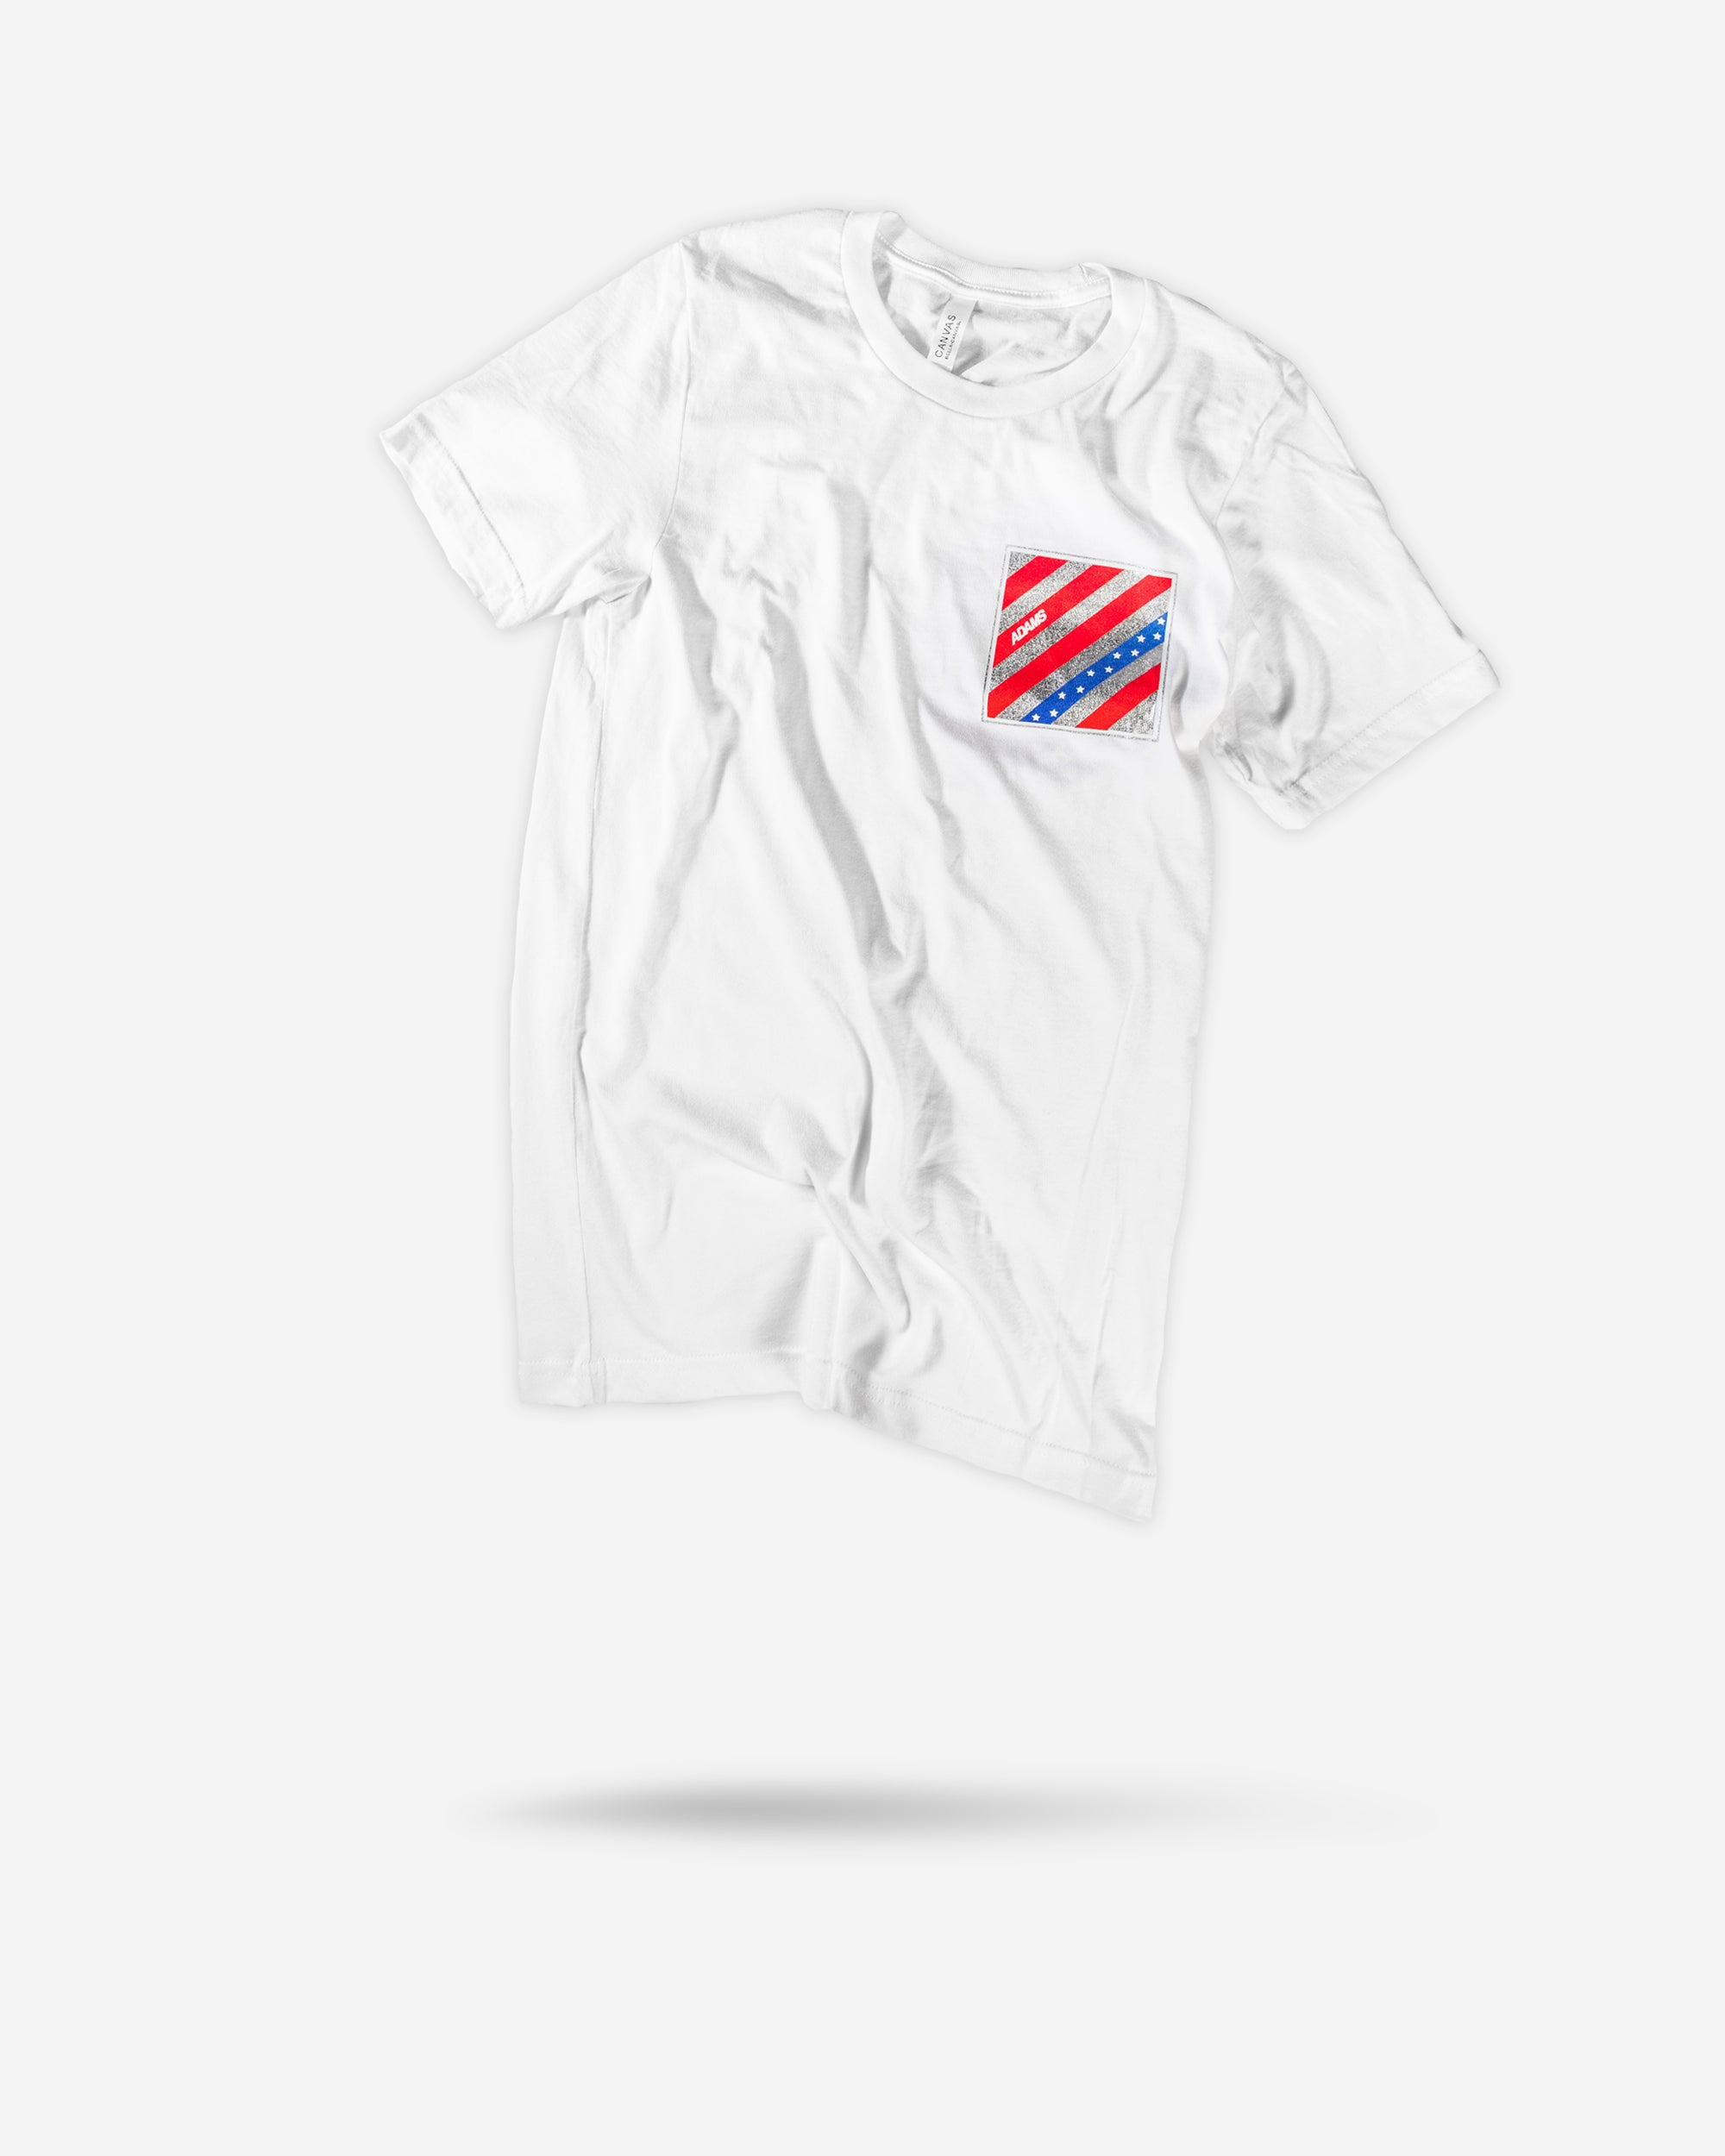 Adam's White USA Logo Shirt